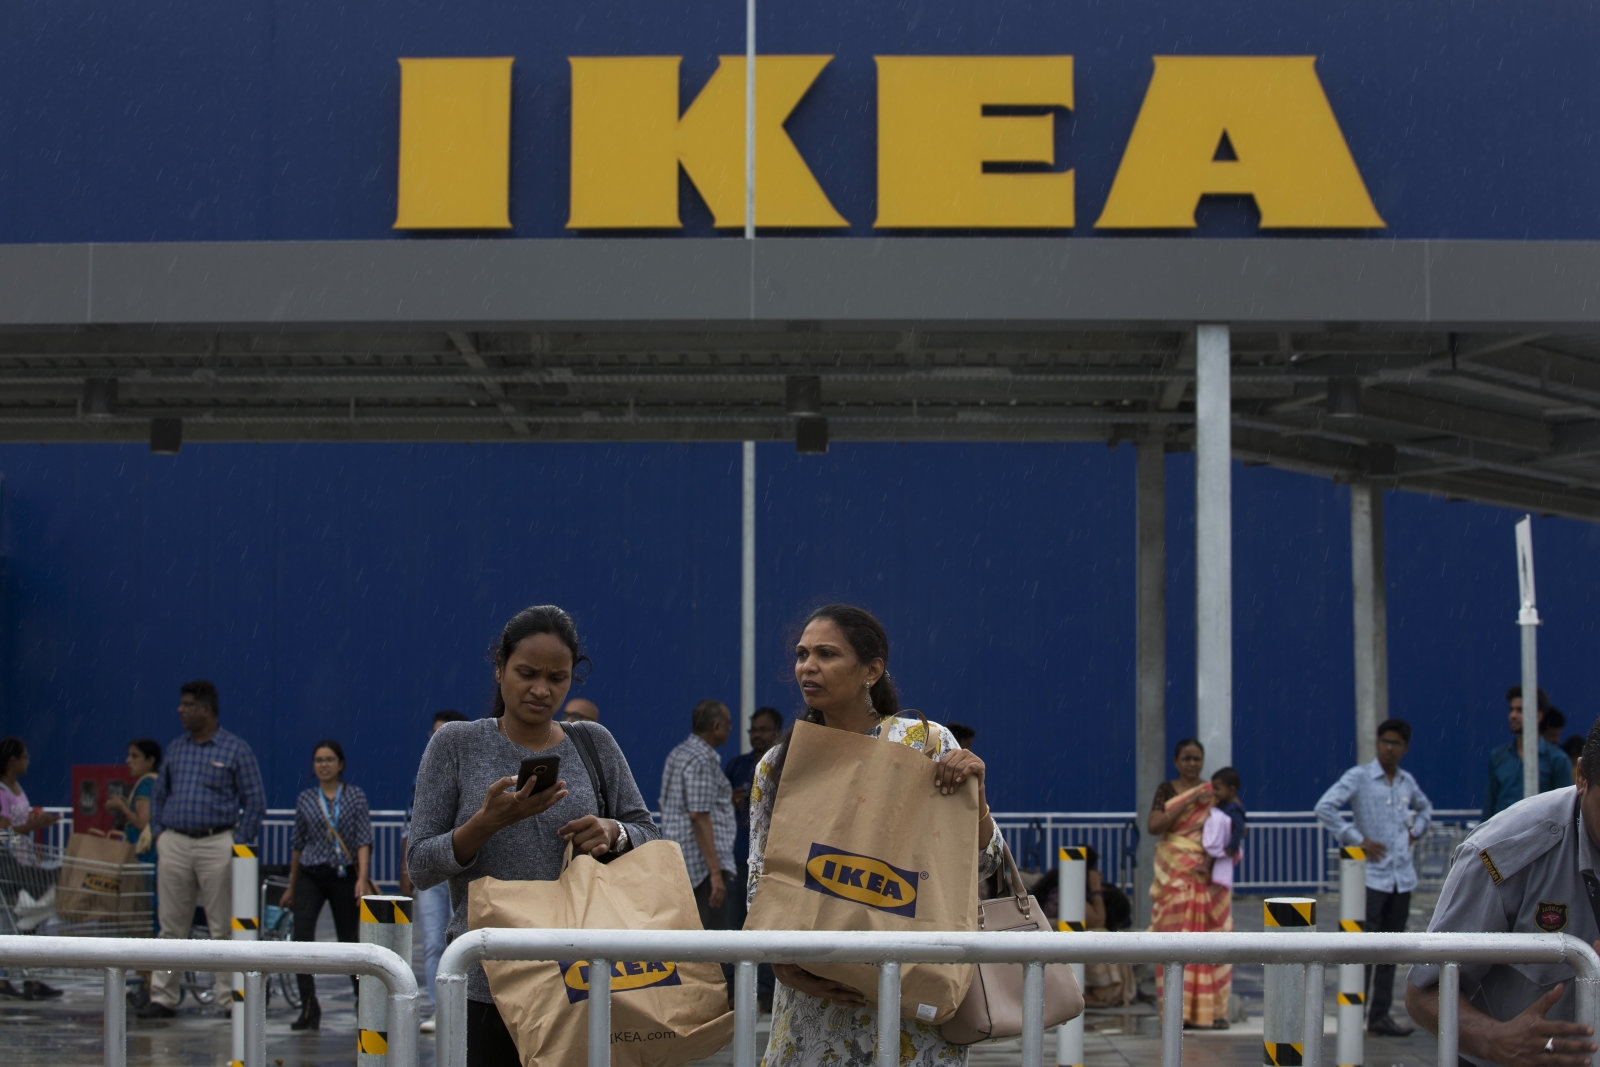 IKEA will finally offer online shopping through mobile apps   DeviceDaily.com